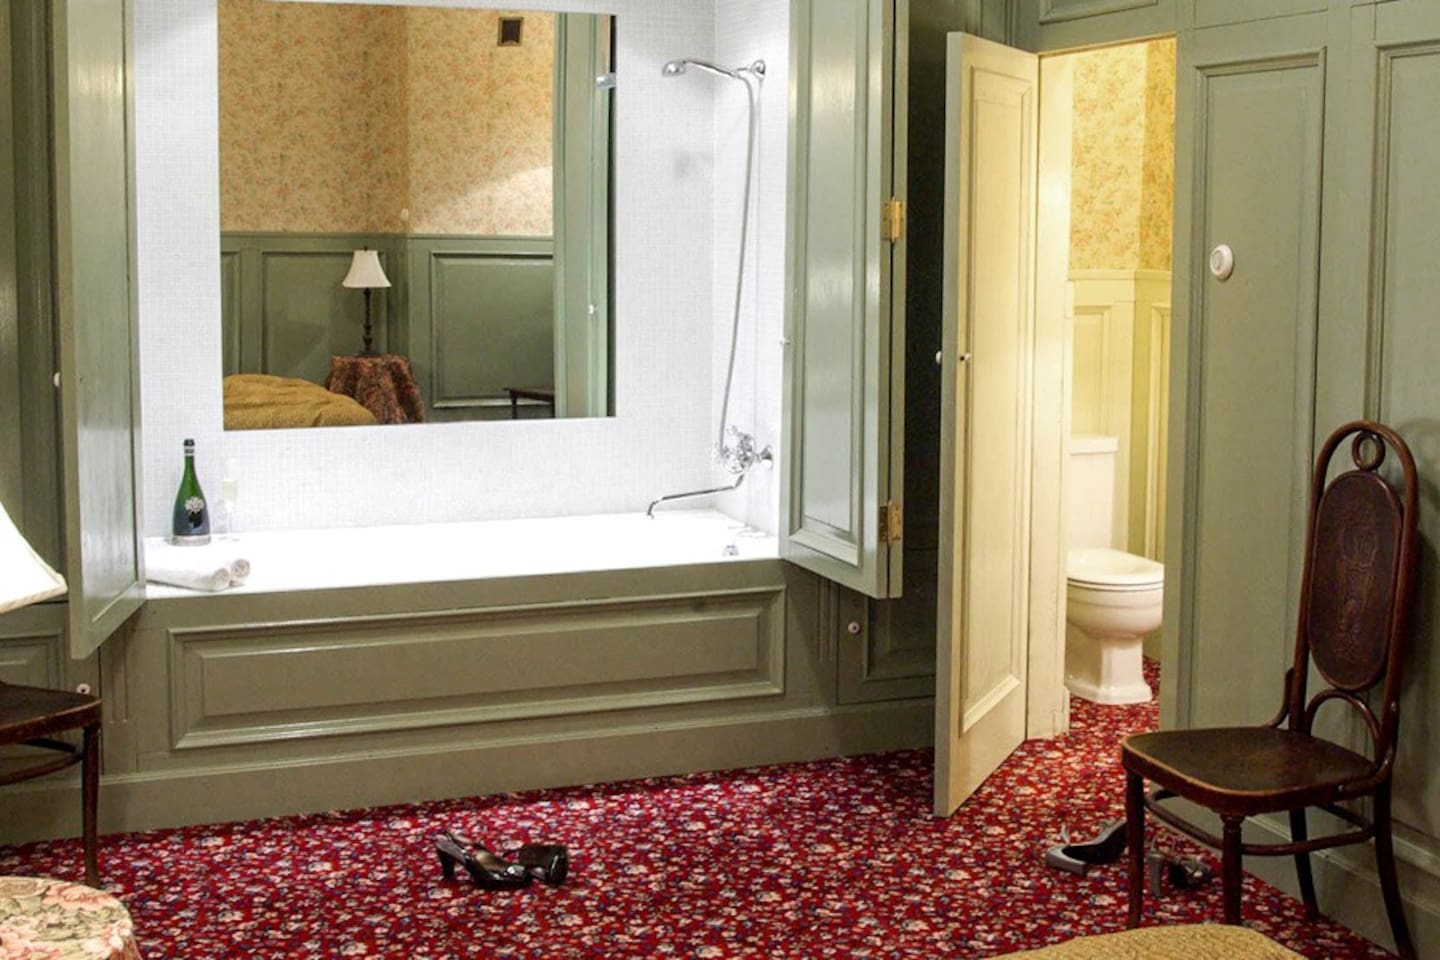 The bath/shower and toilet are built into closets.